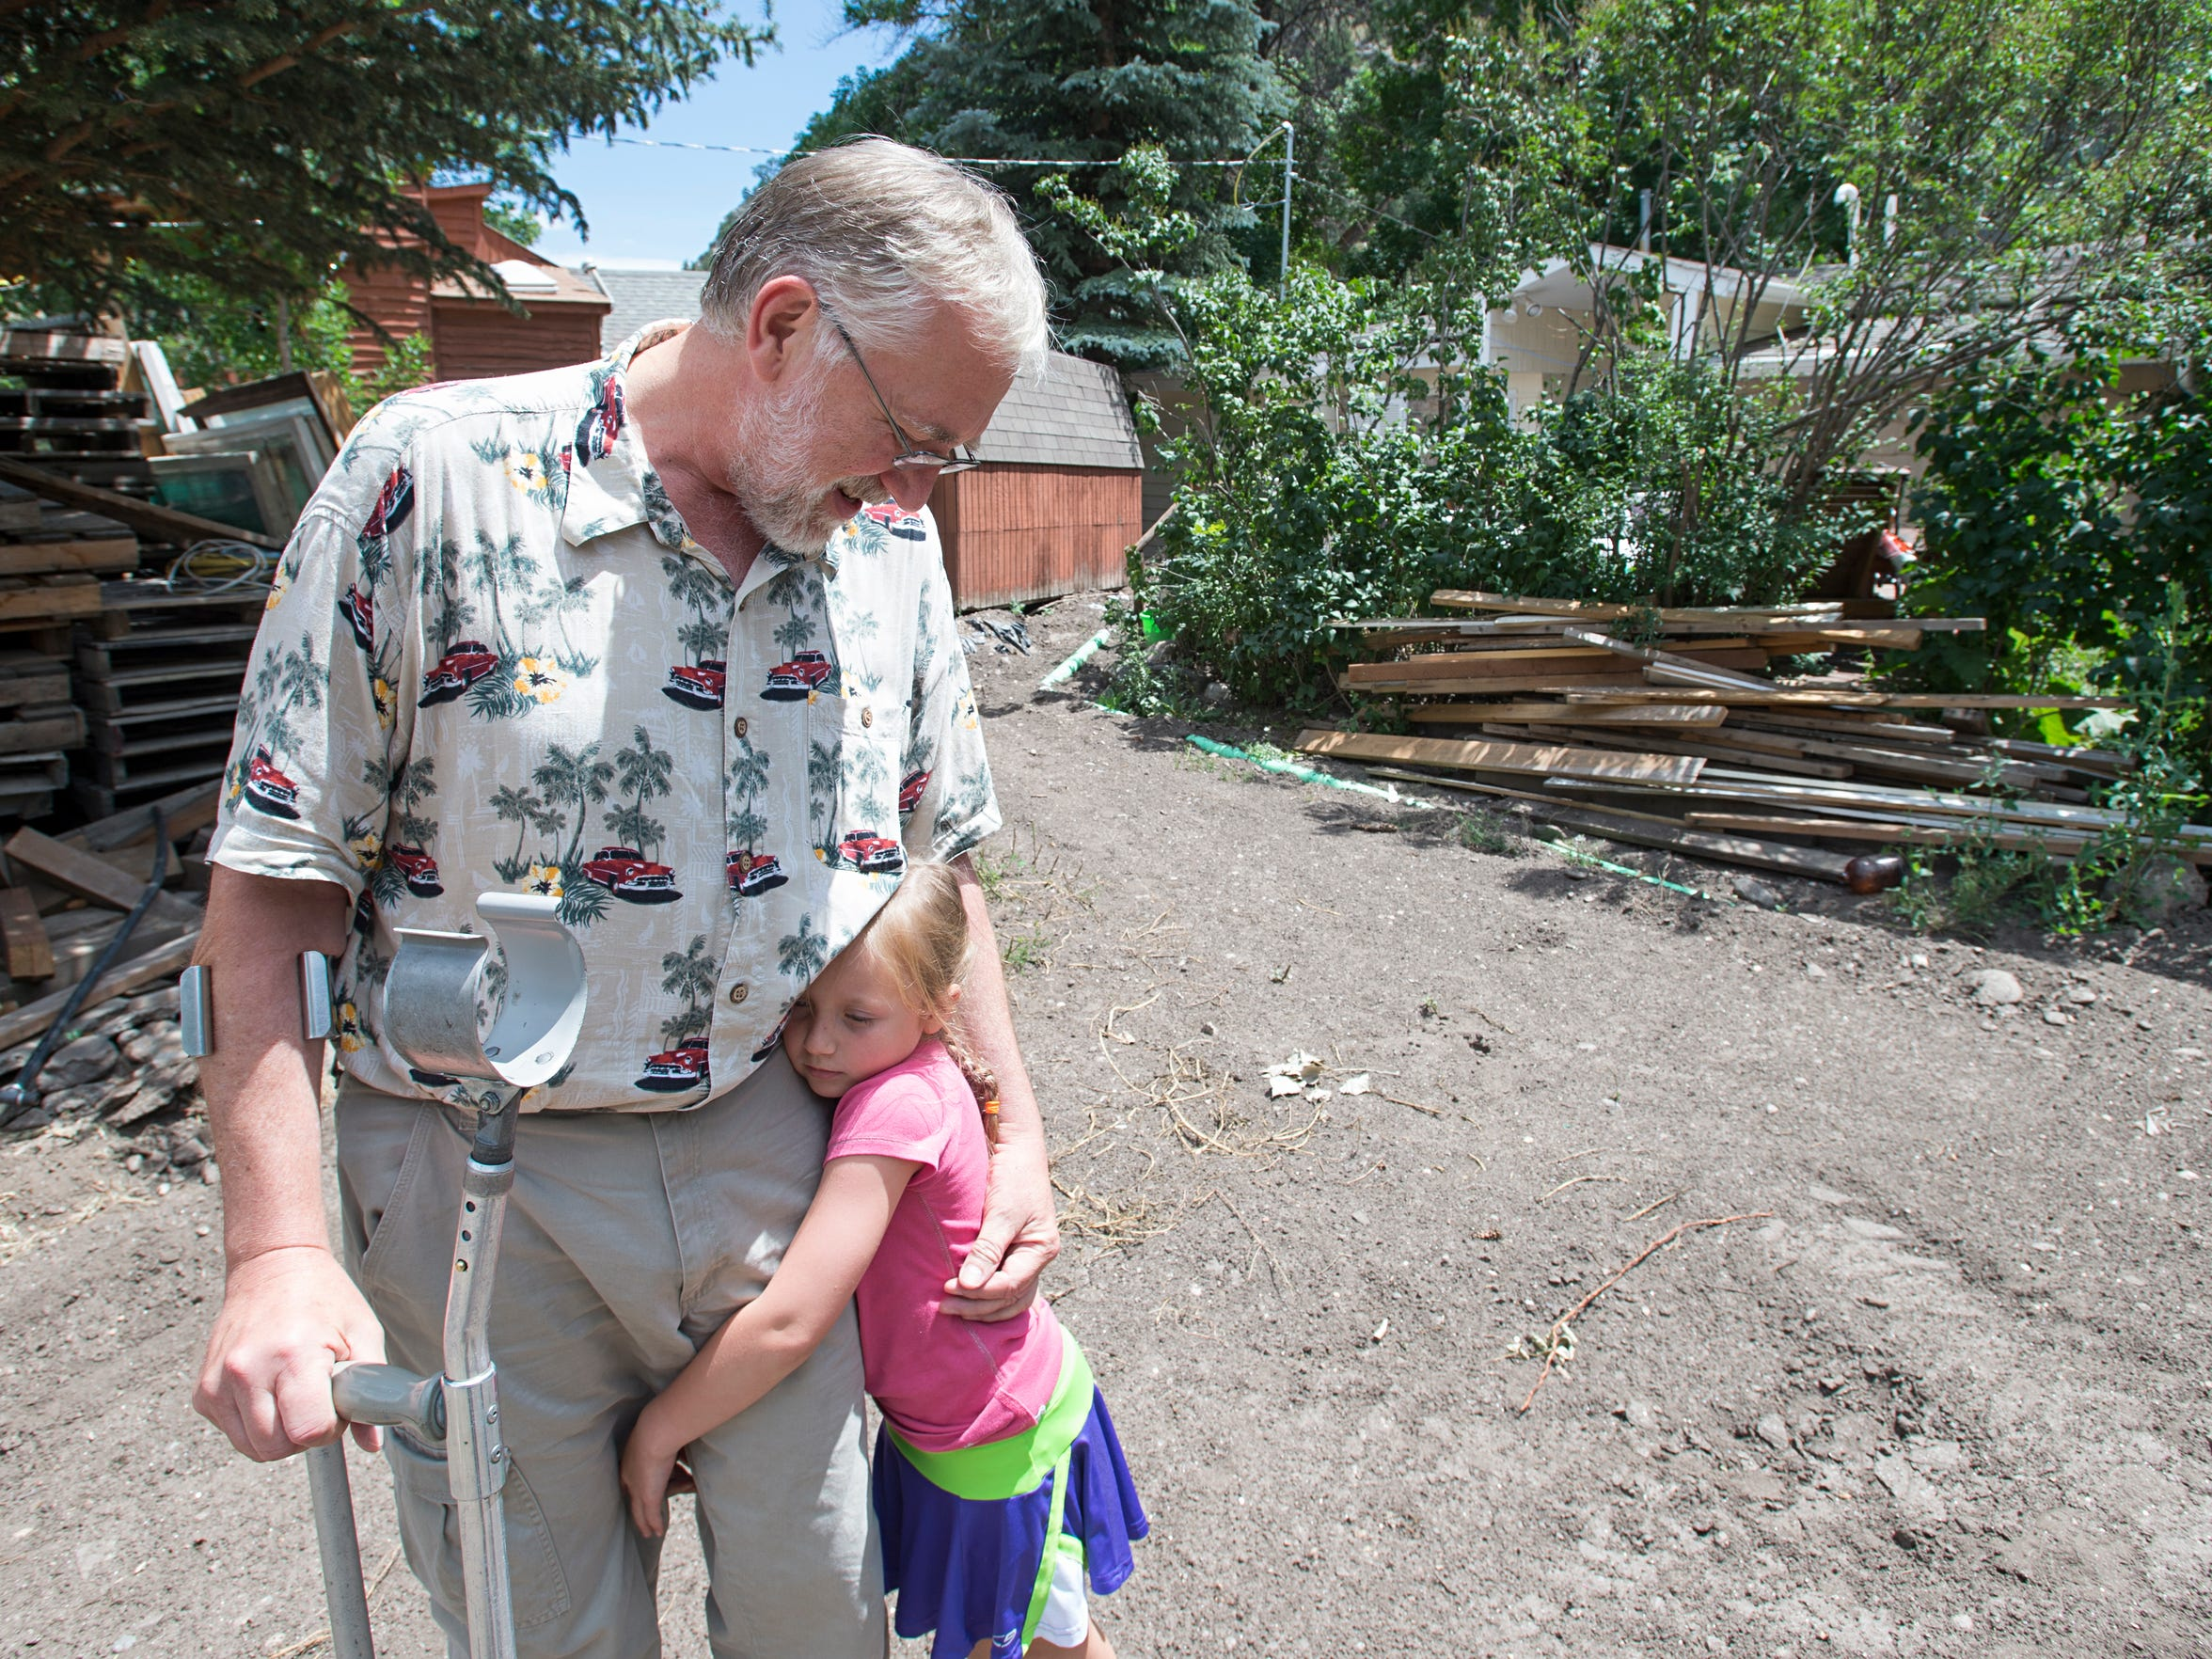 Jerry Shaffer hugs his granddaughter, Audrey, 6, on his property in Drake July 22. Shaffer, a survivor of the 1976 flood of the Big Thompson River, is still working to rebuild his home after another flood moved through the area in 2013.